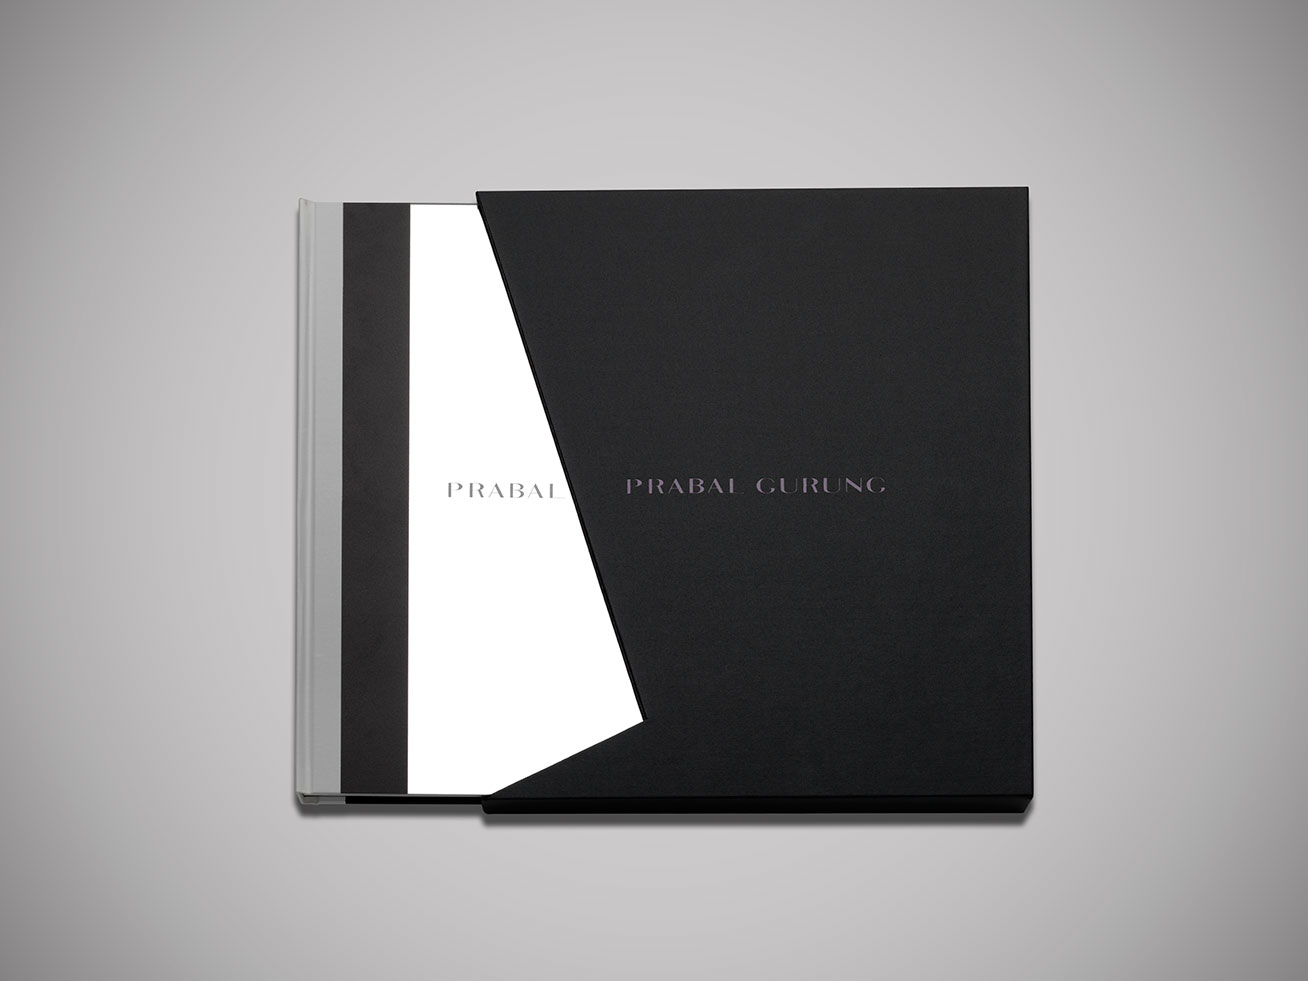 A brand book for Prabal Gurung that was designed by DTE Studio.